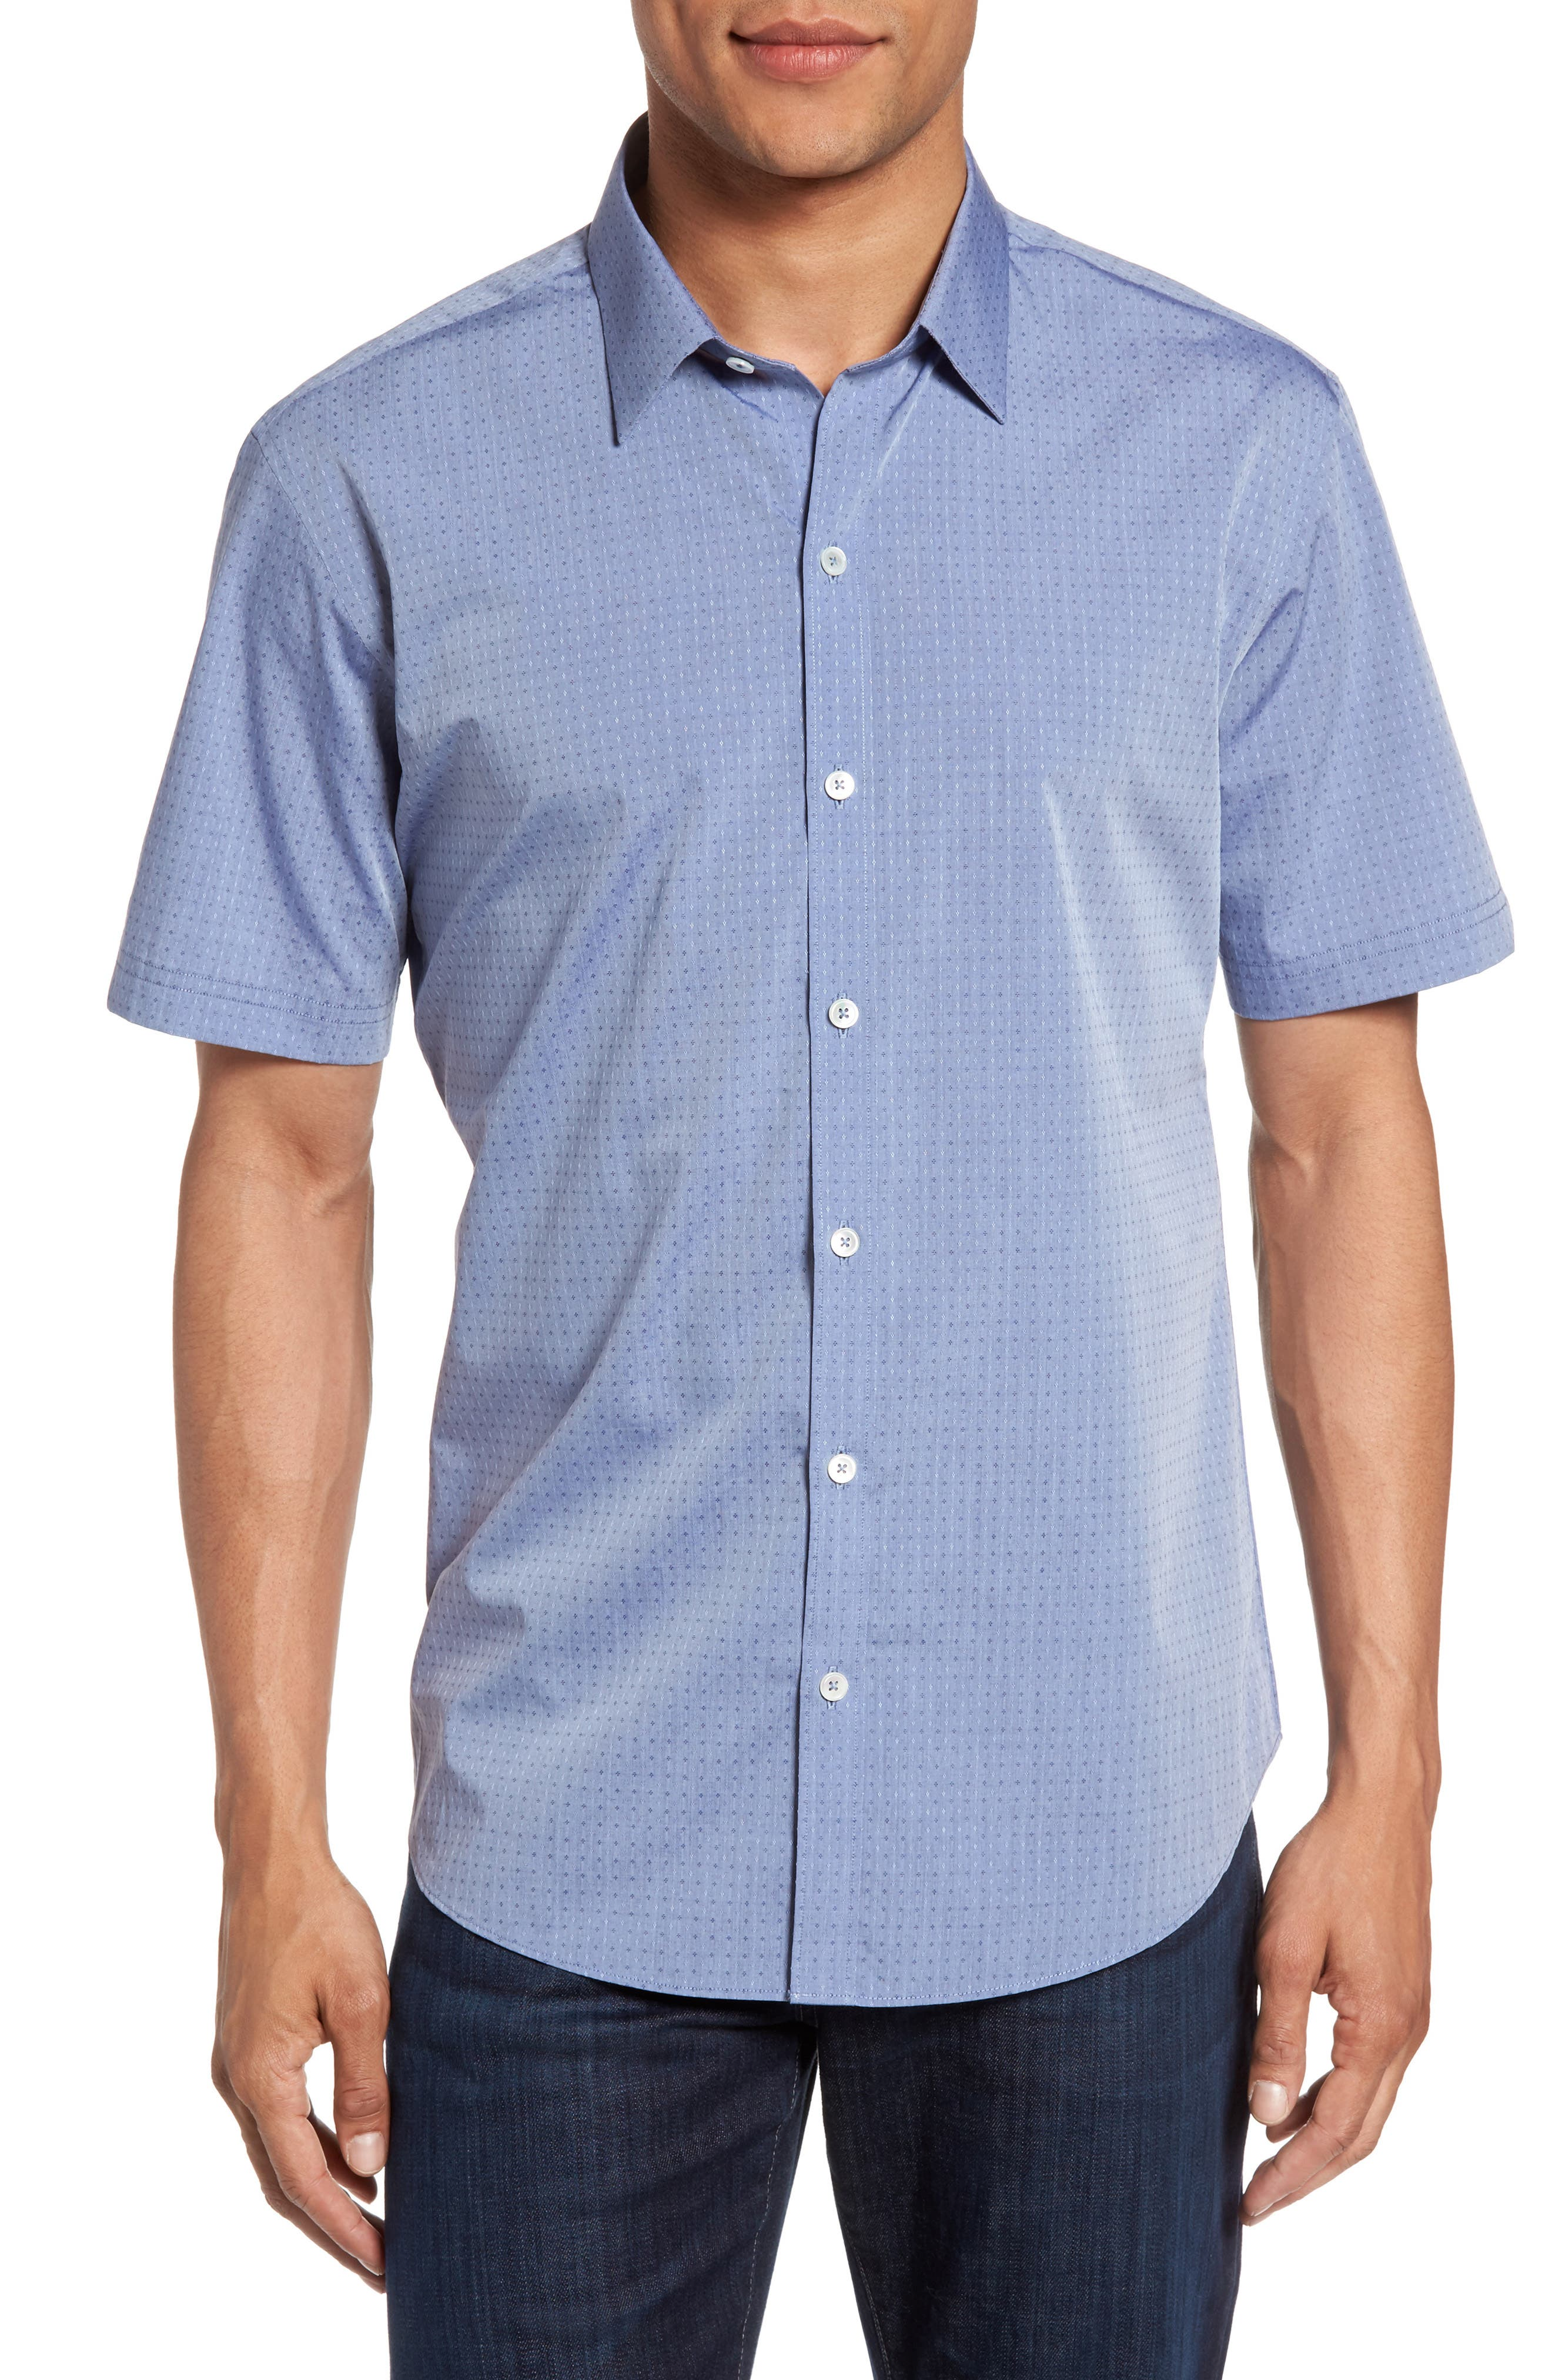 Diamond Print Short Sleeve Sport Shirt,                         Main,                         color, Blue